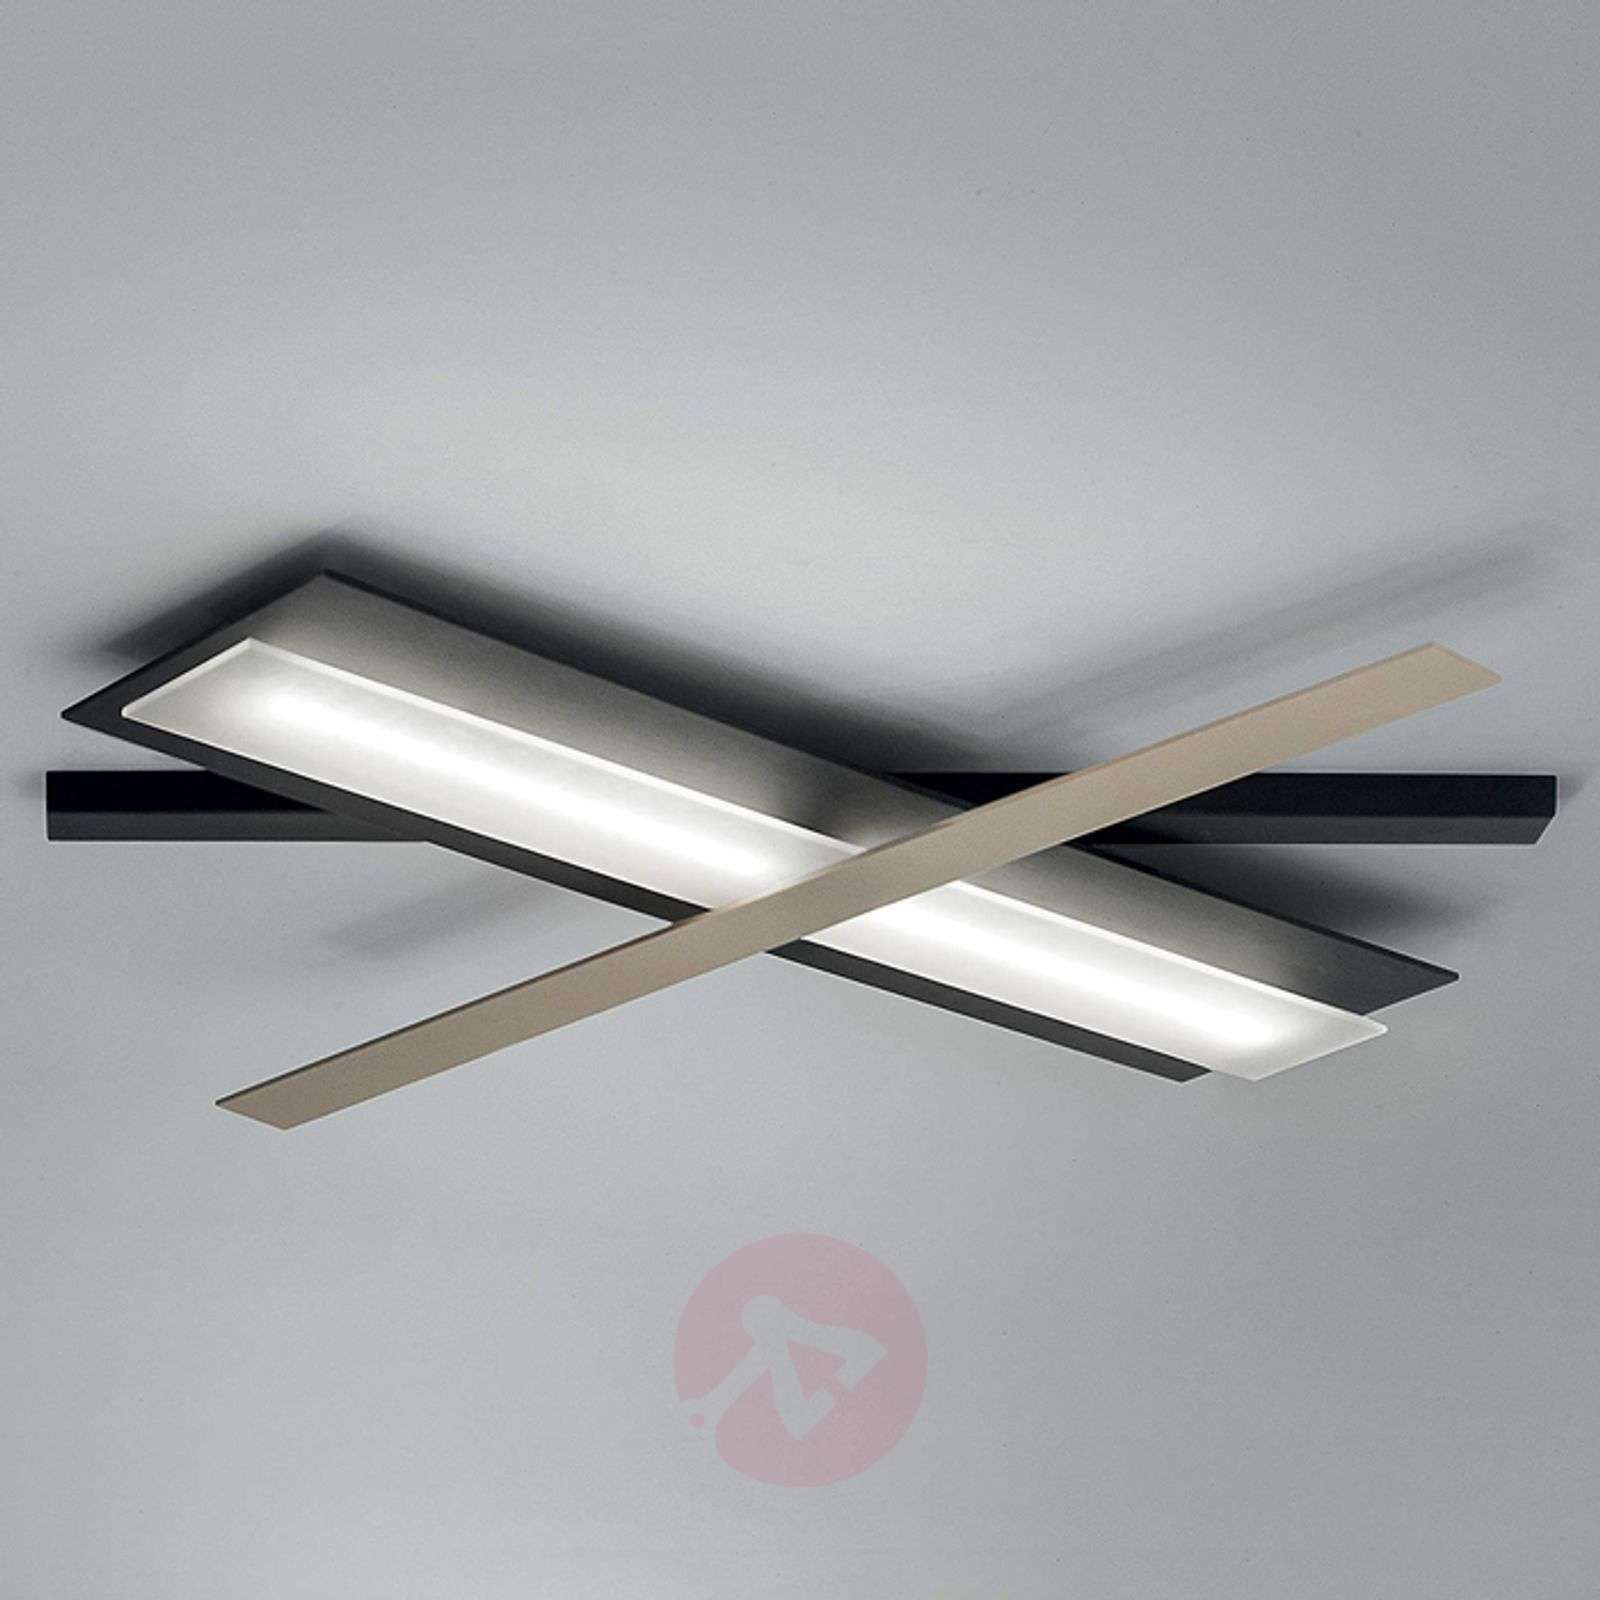 Flexibly adjustable eclipss led ceiling light lights flexibly adjustable eclipss led ceiling light 6043264 01 mozeypictures Image collections